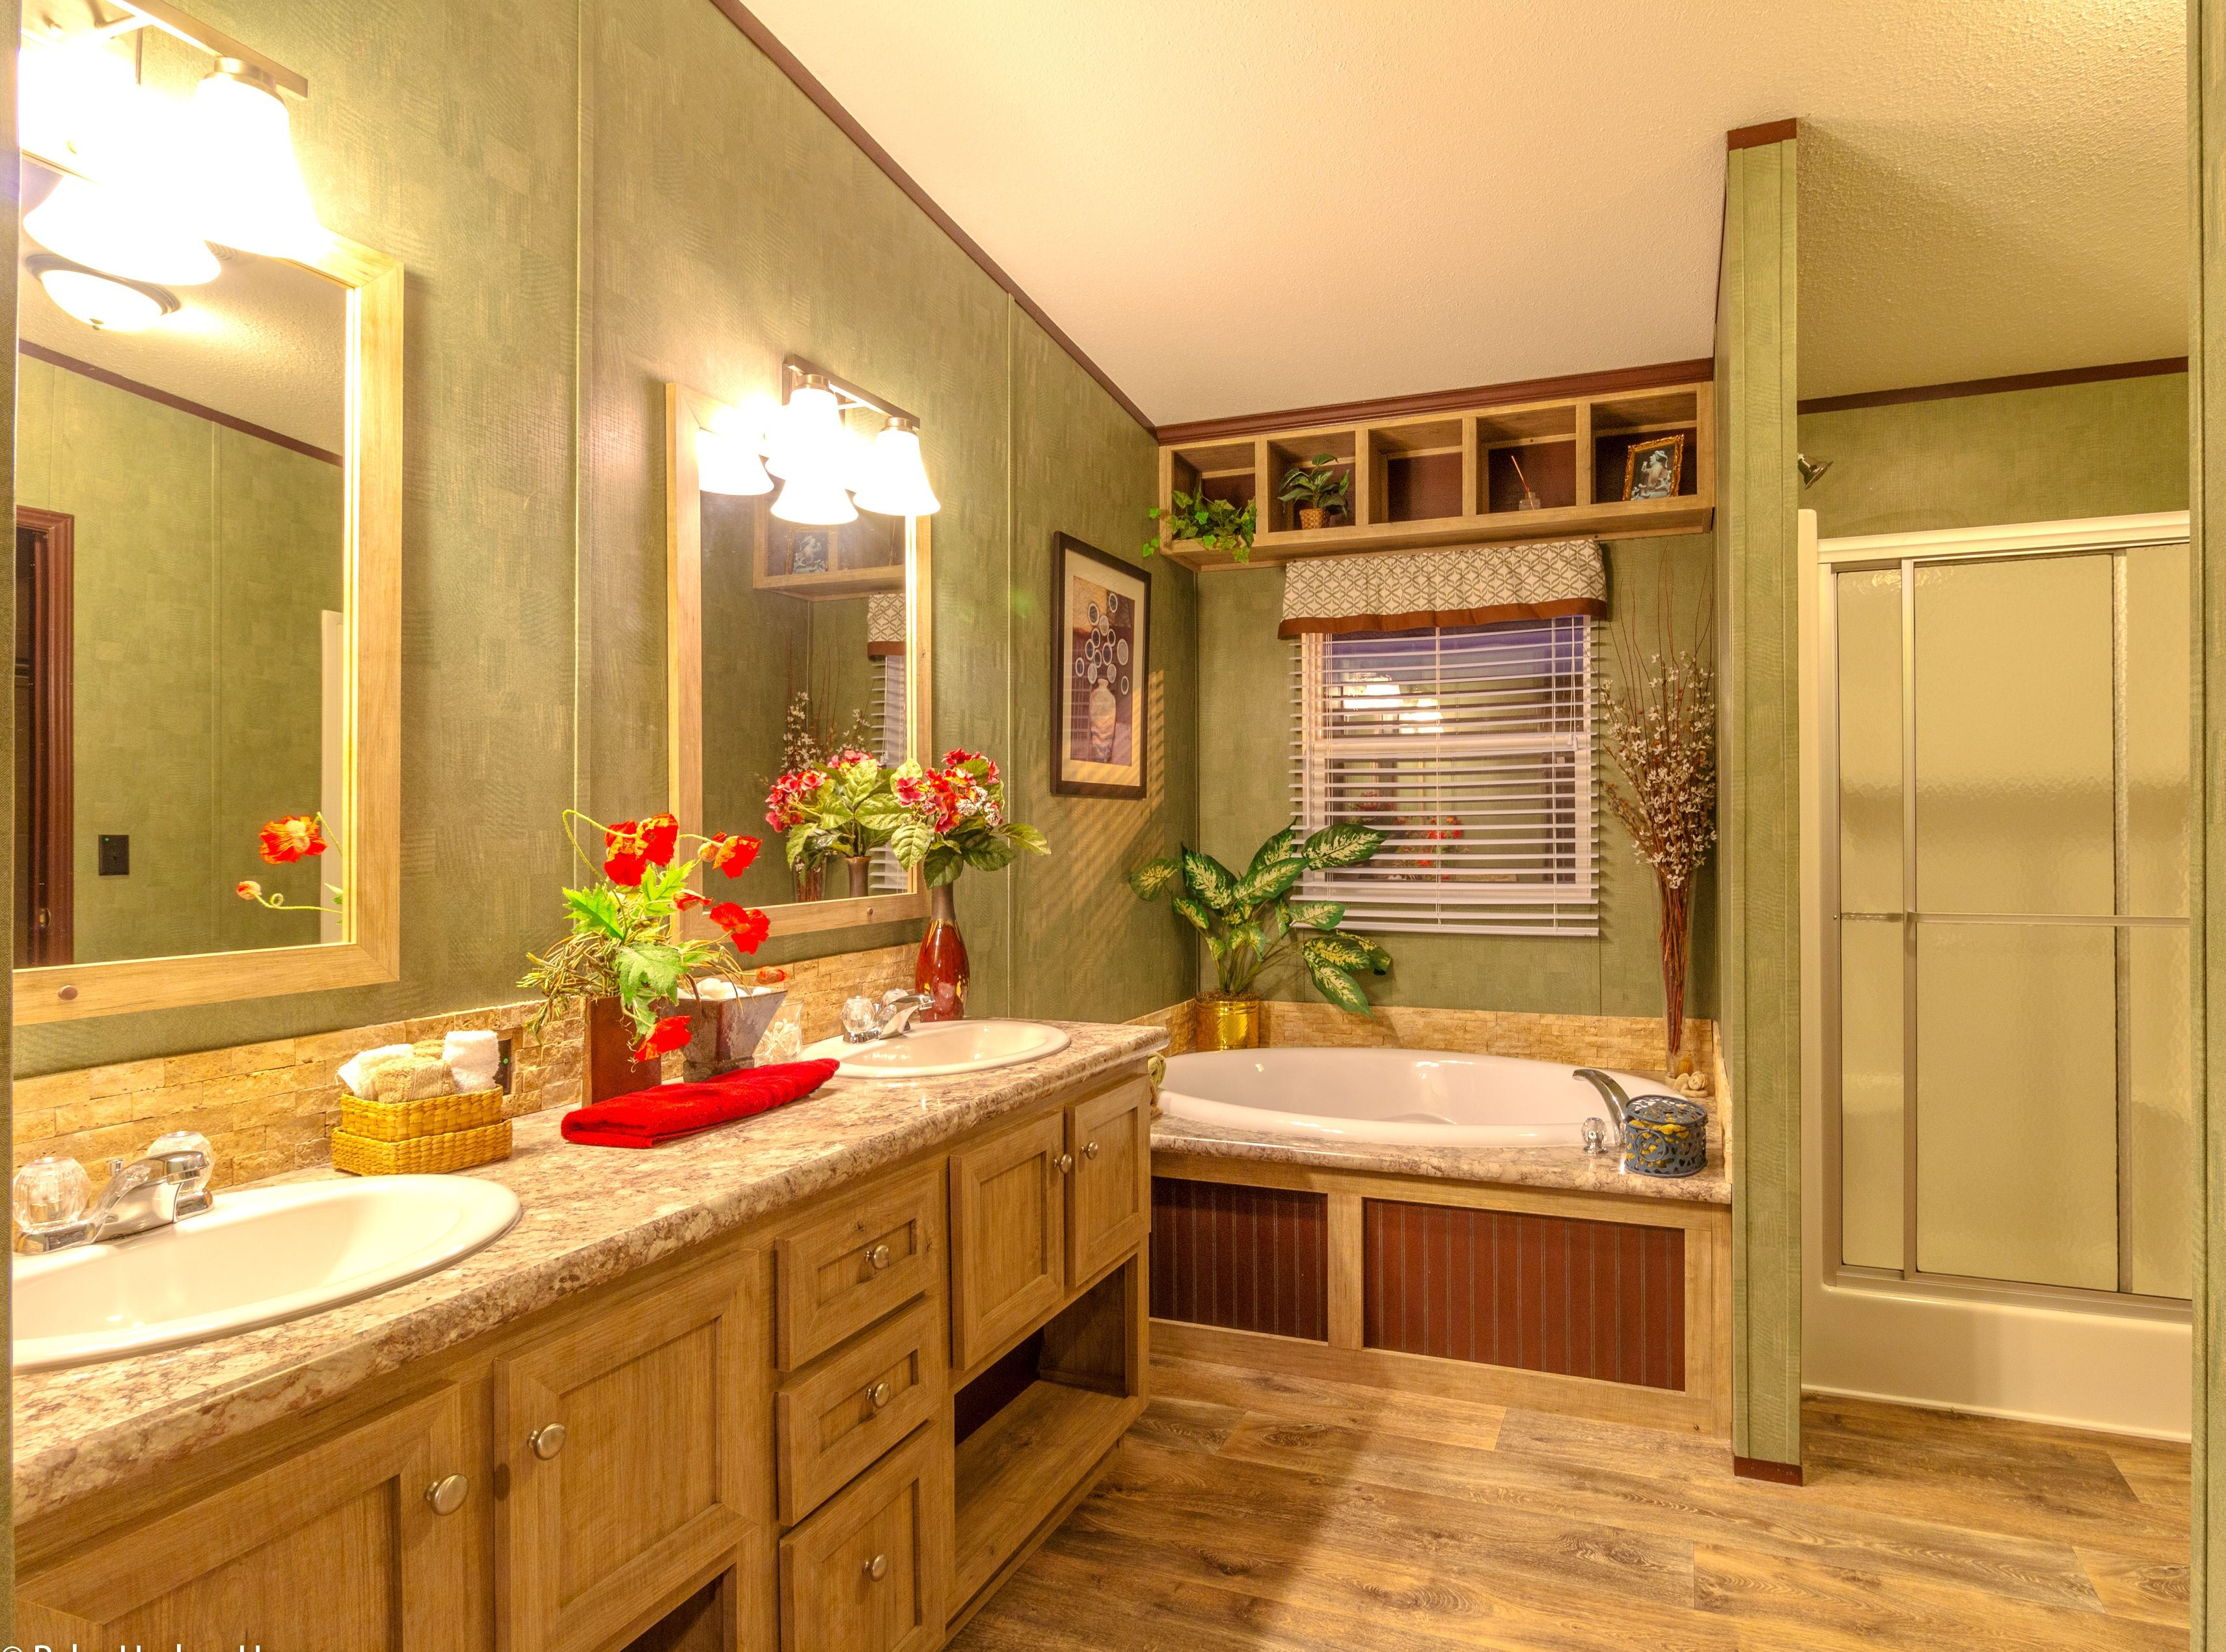 Bathroom Remodeling Kerrville Tx master baths, quality low priced modular homes & mobiles homes for